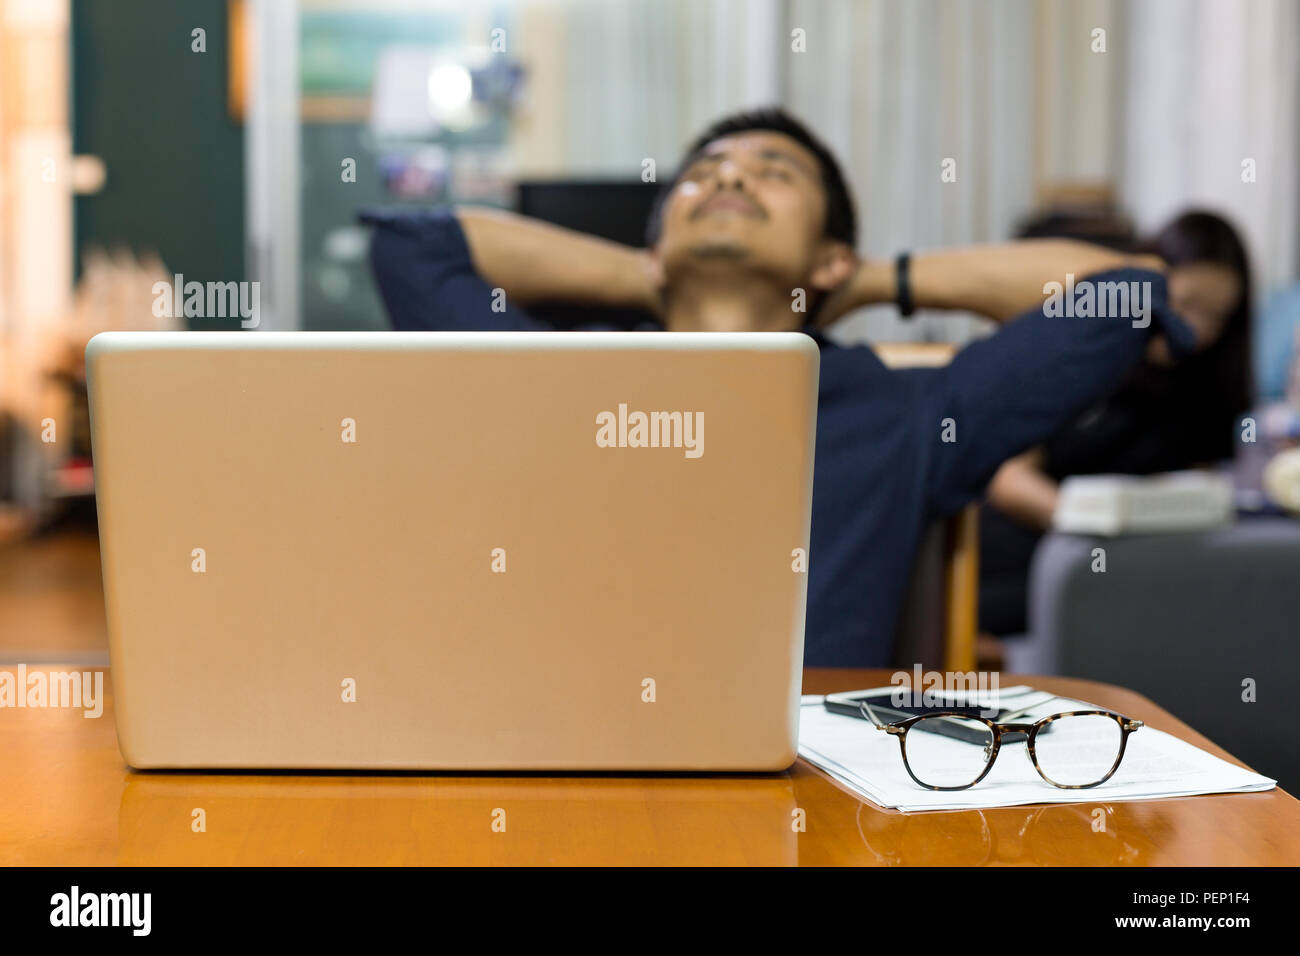 Businessman and laptop taking a moment sitting back with his eyes closed and hands behind his head. - Stock Image